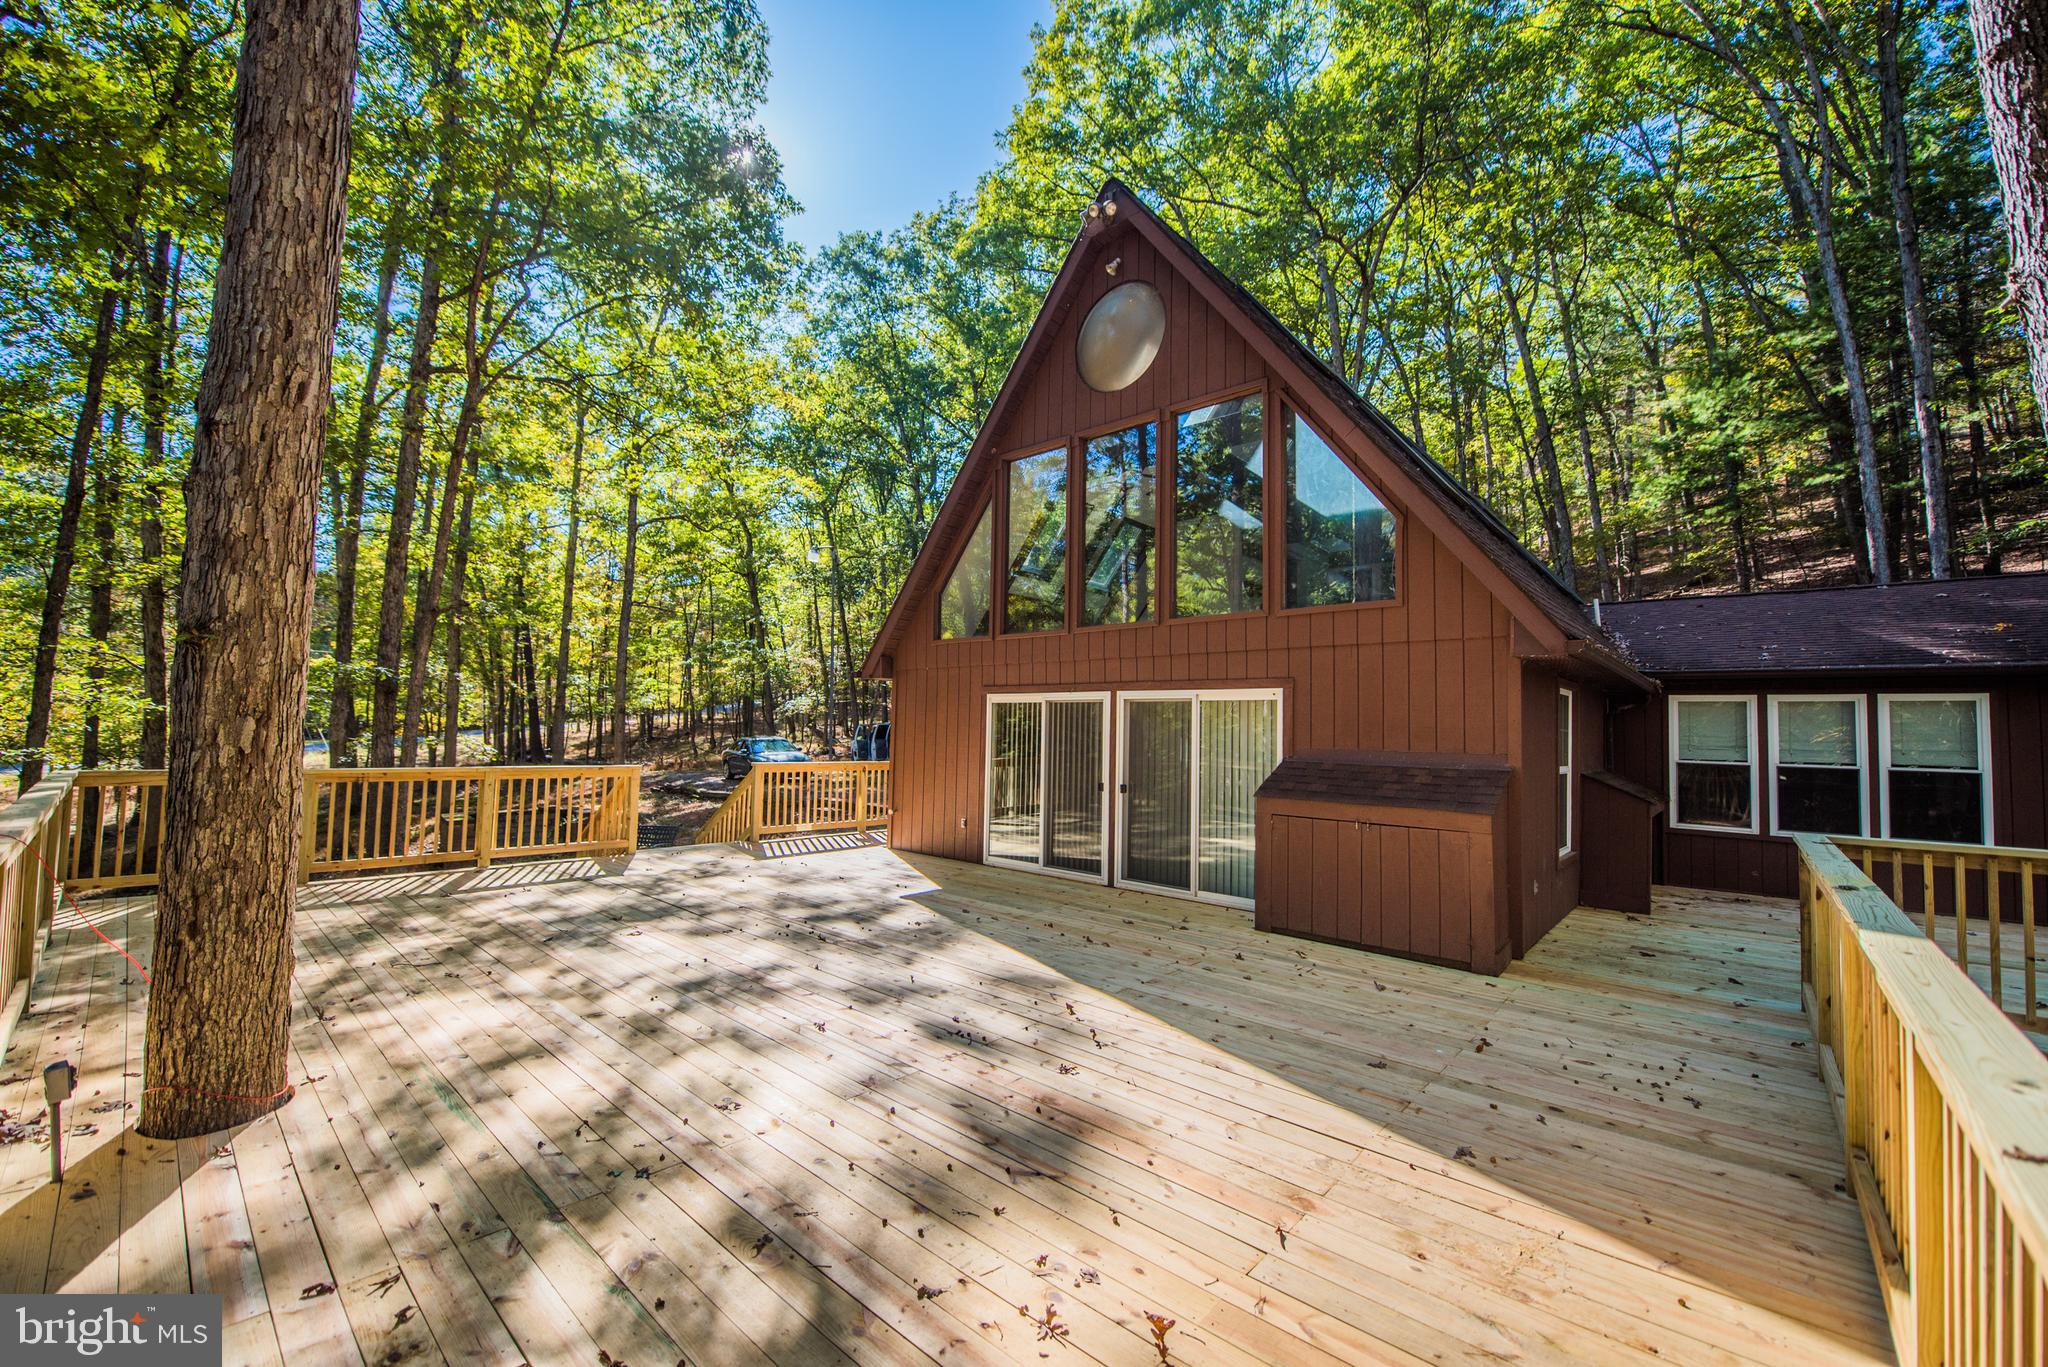 246 SIDELING MOUNTAIN TRAIL, GREAT CACAPON, WV 25422